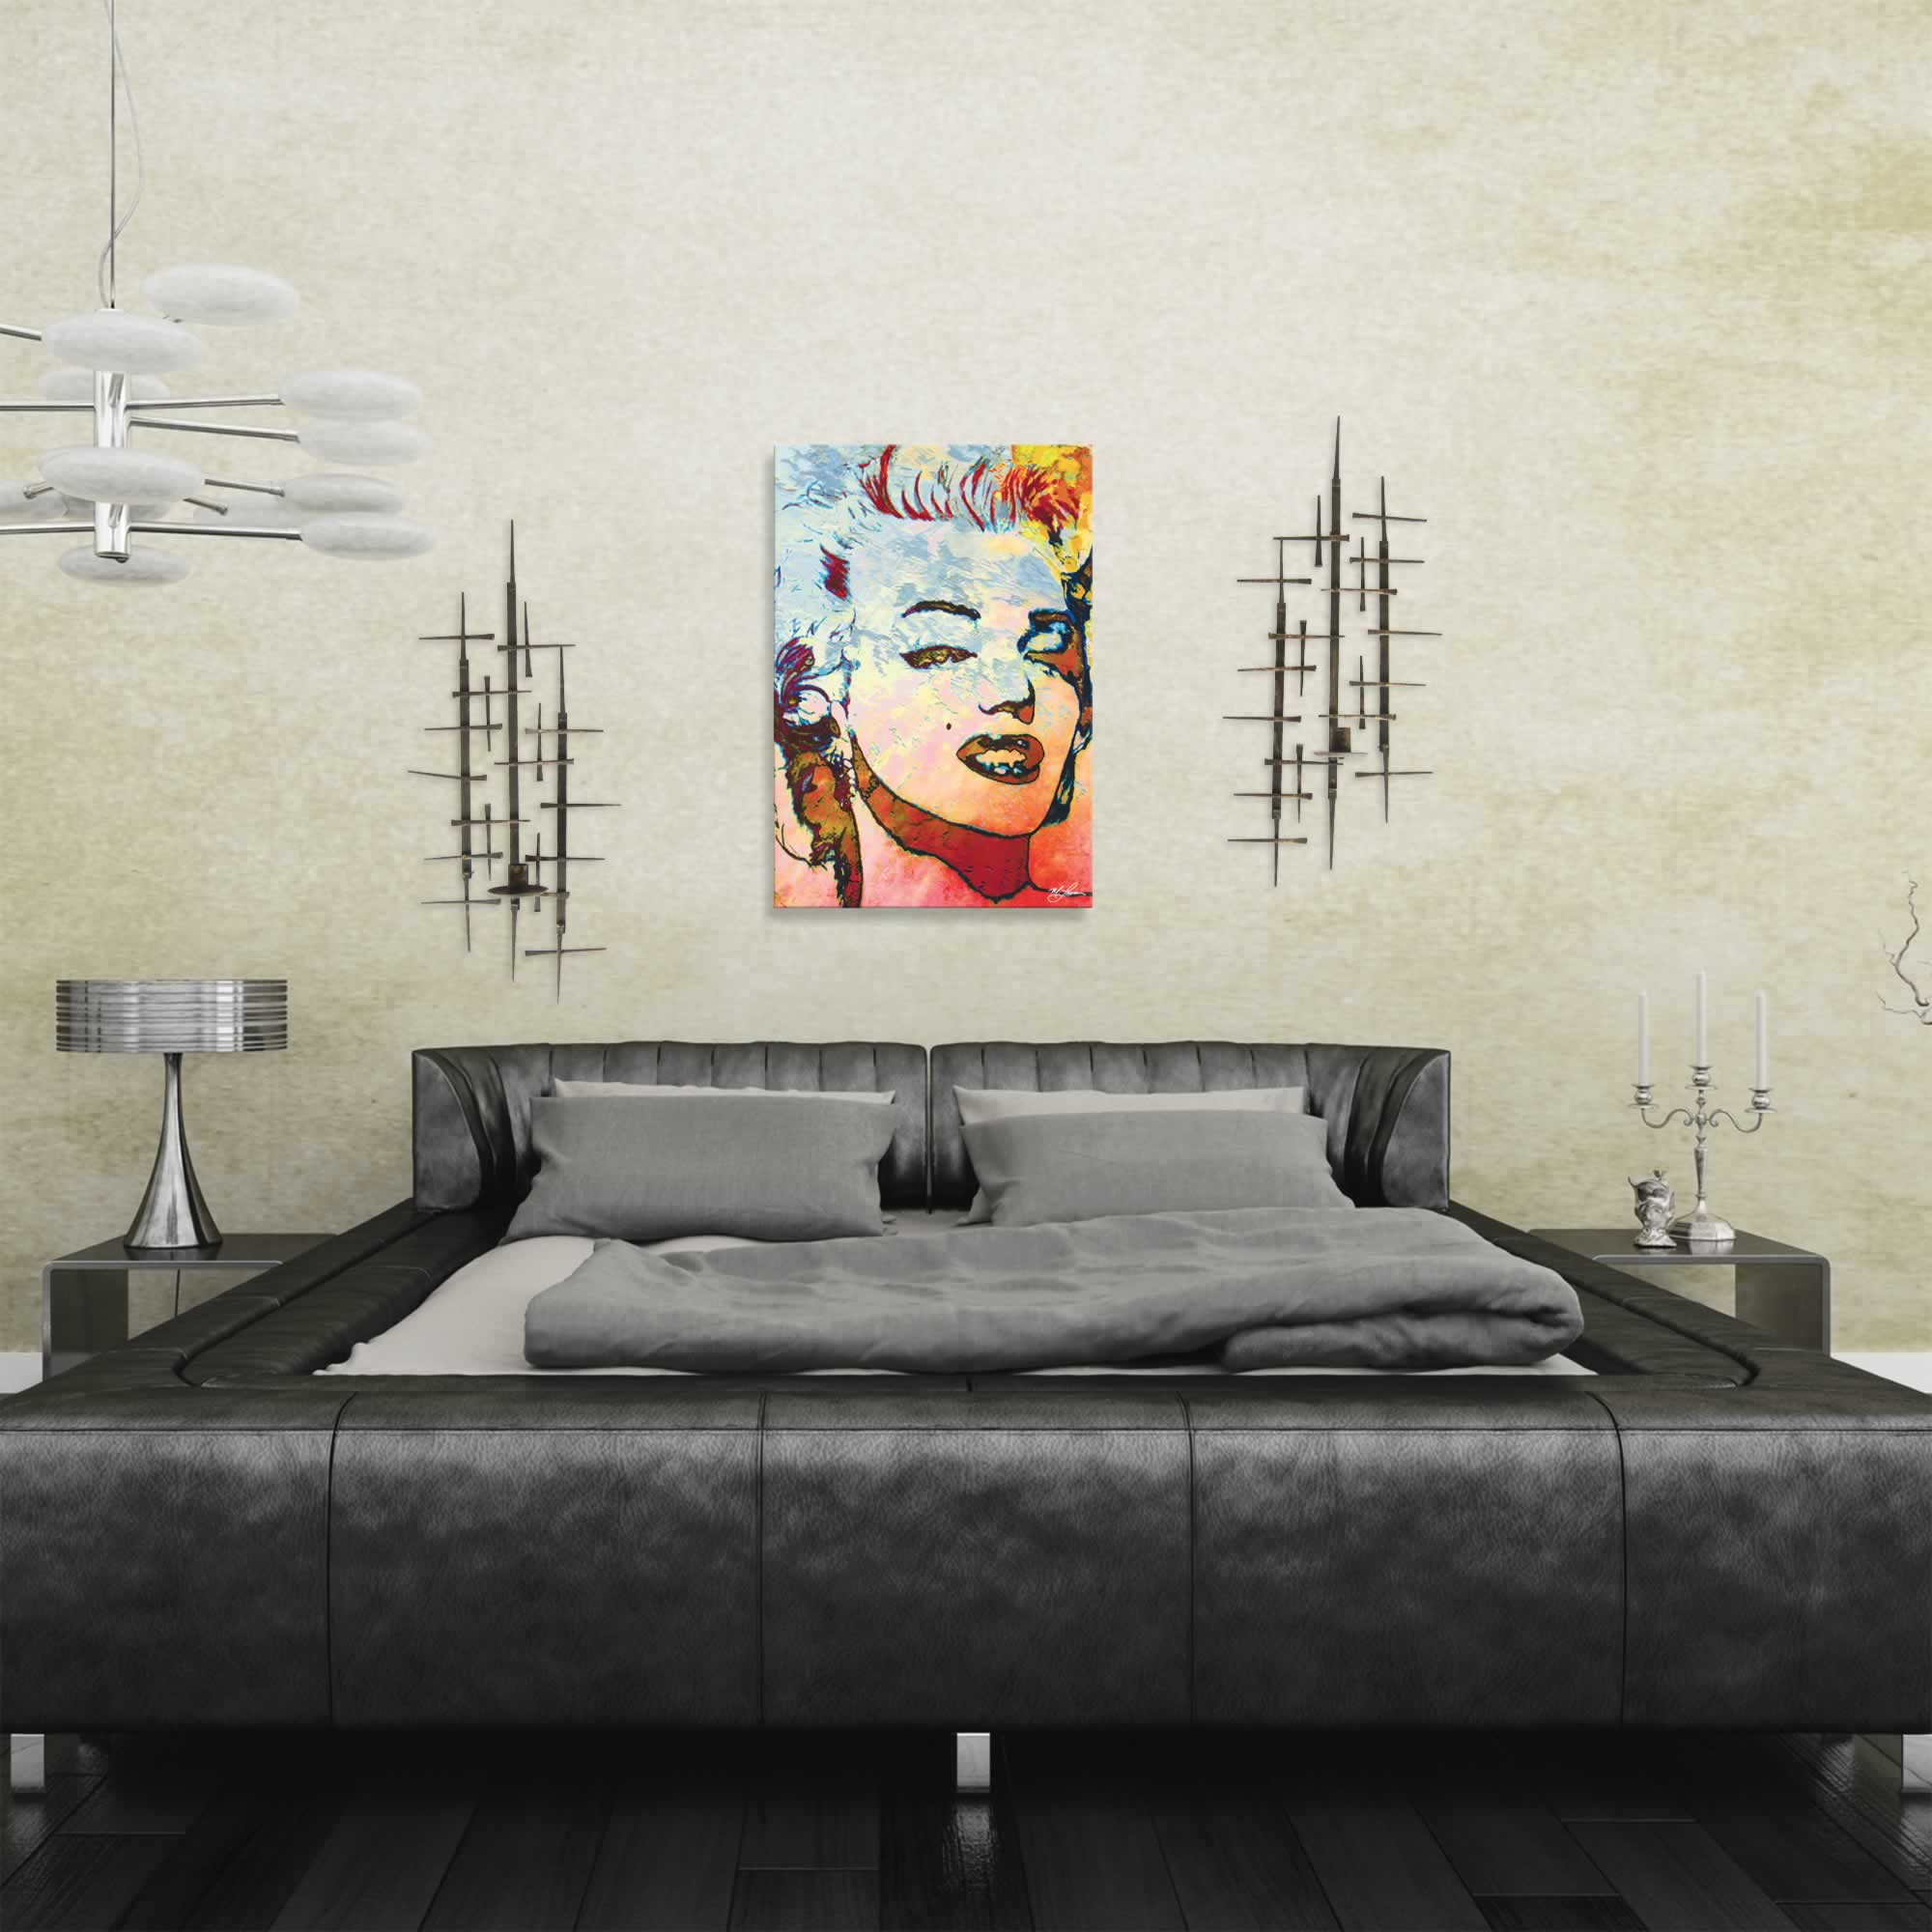 Marilyn Monroe Red   Pop Art Painting by Mark Lewis, Signed & Numbered Limited Edition - ML0024